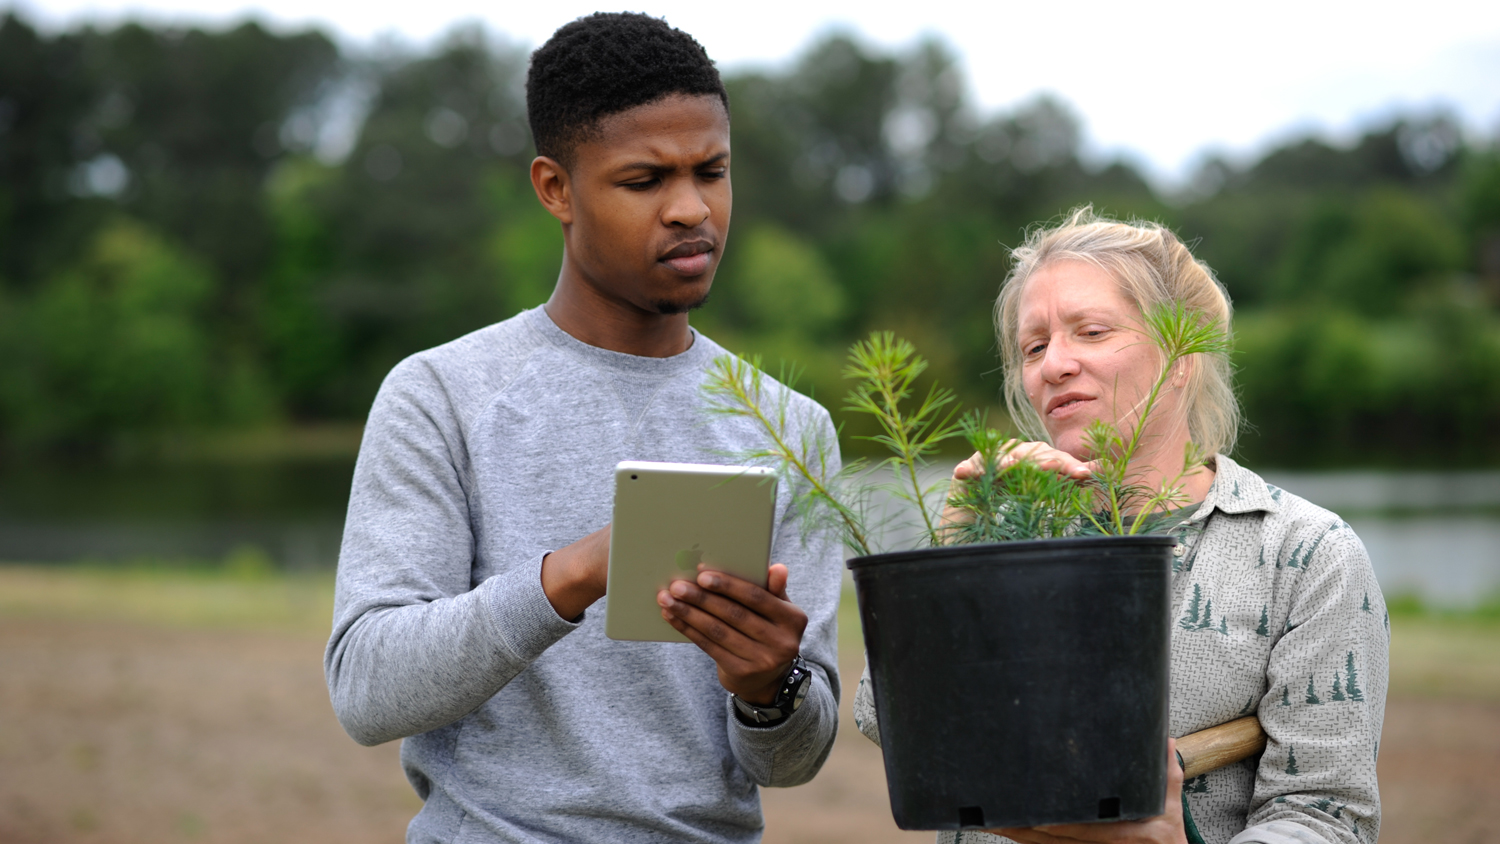 Student learns about plants in the College of Natural Resources at NC State